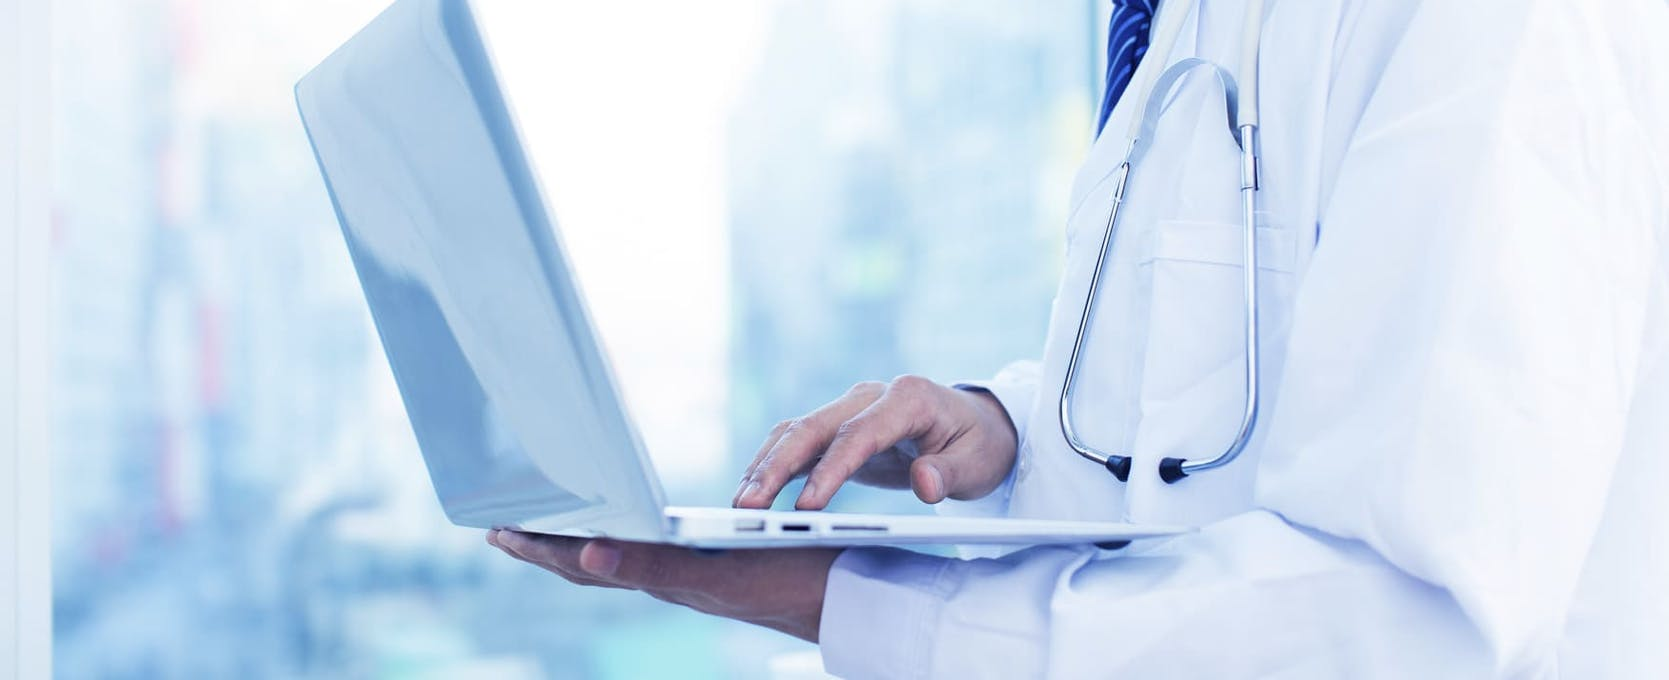 Doctor standing and working on a laptop